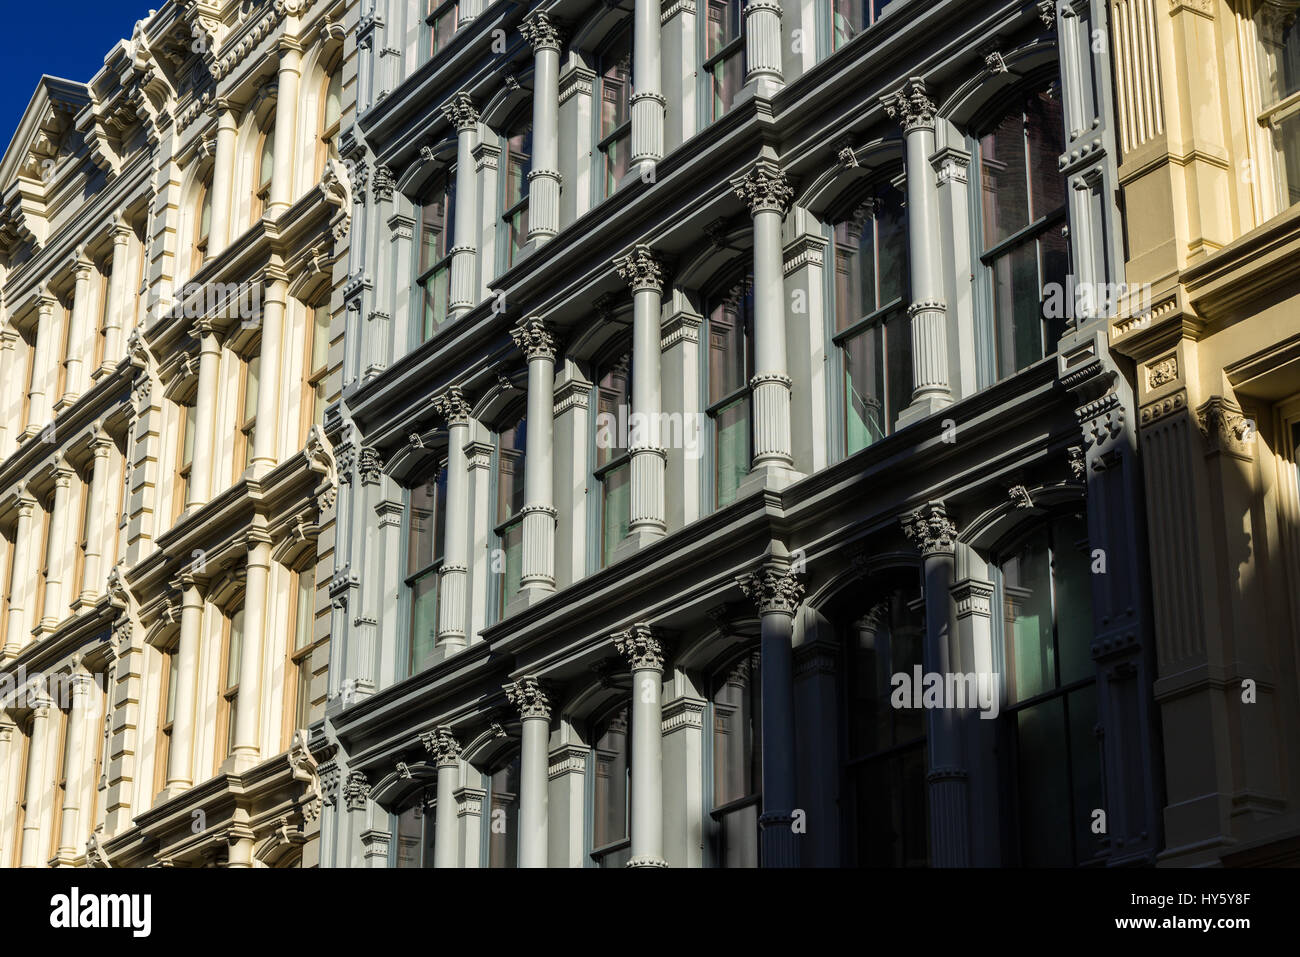 Painted 19th century facades in Manhattan's Soho neighborhood with cast iron columns and ornamentation. New - Stock Image